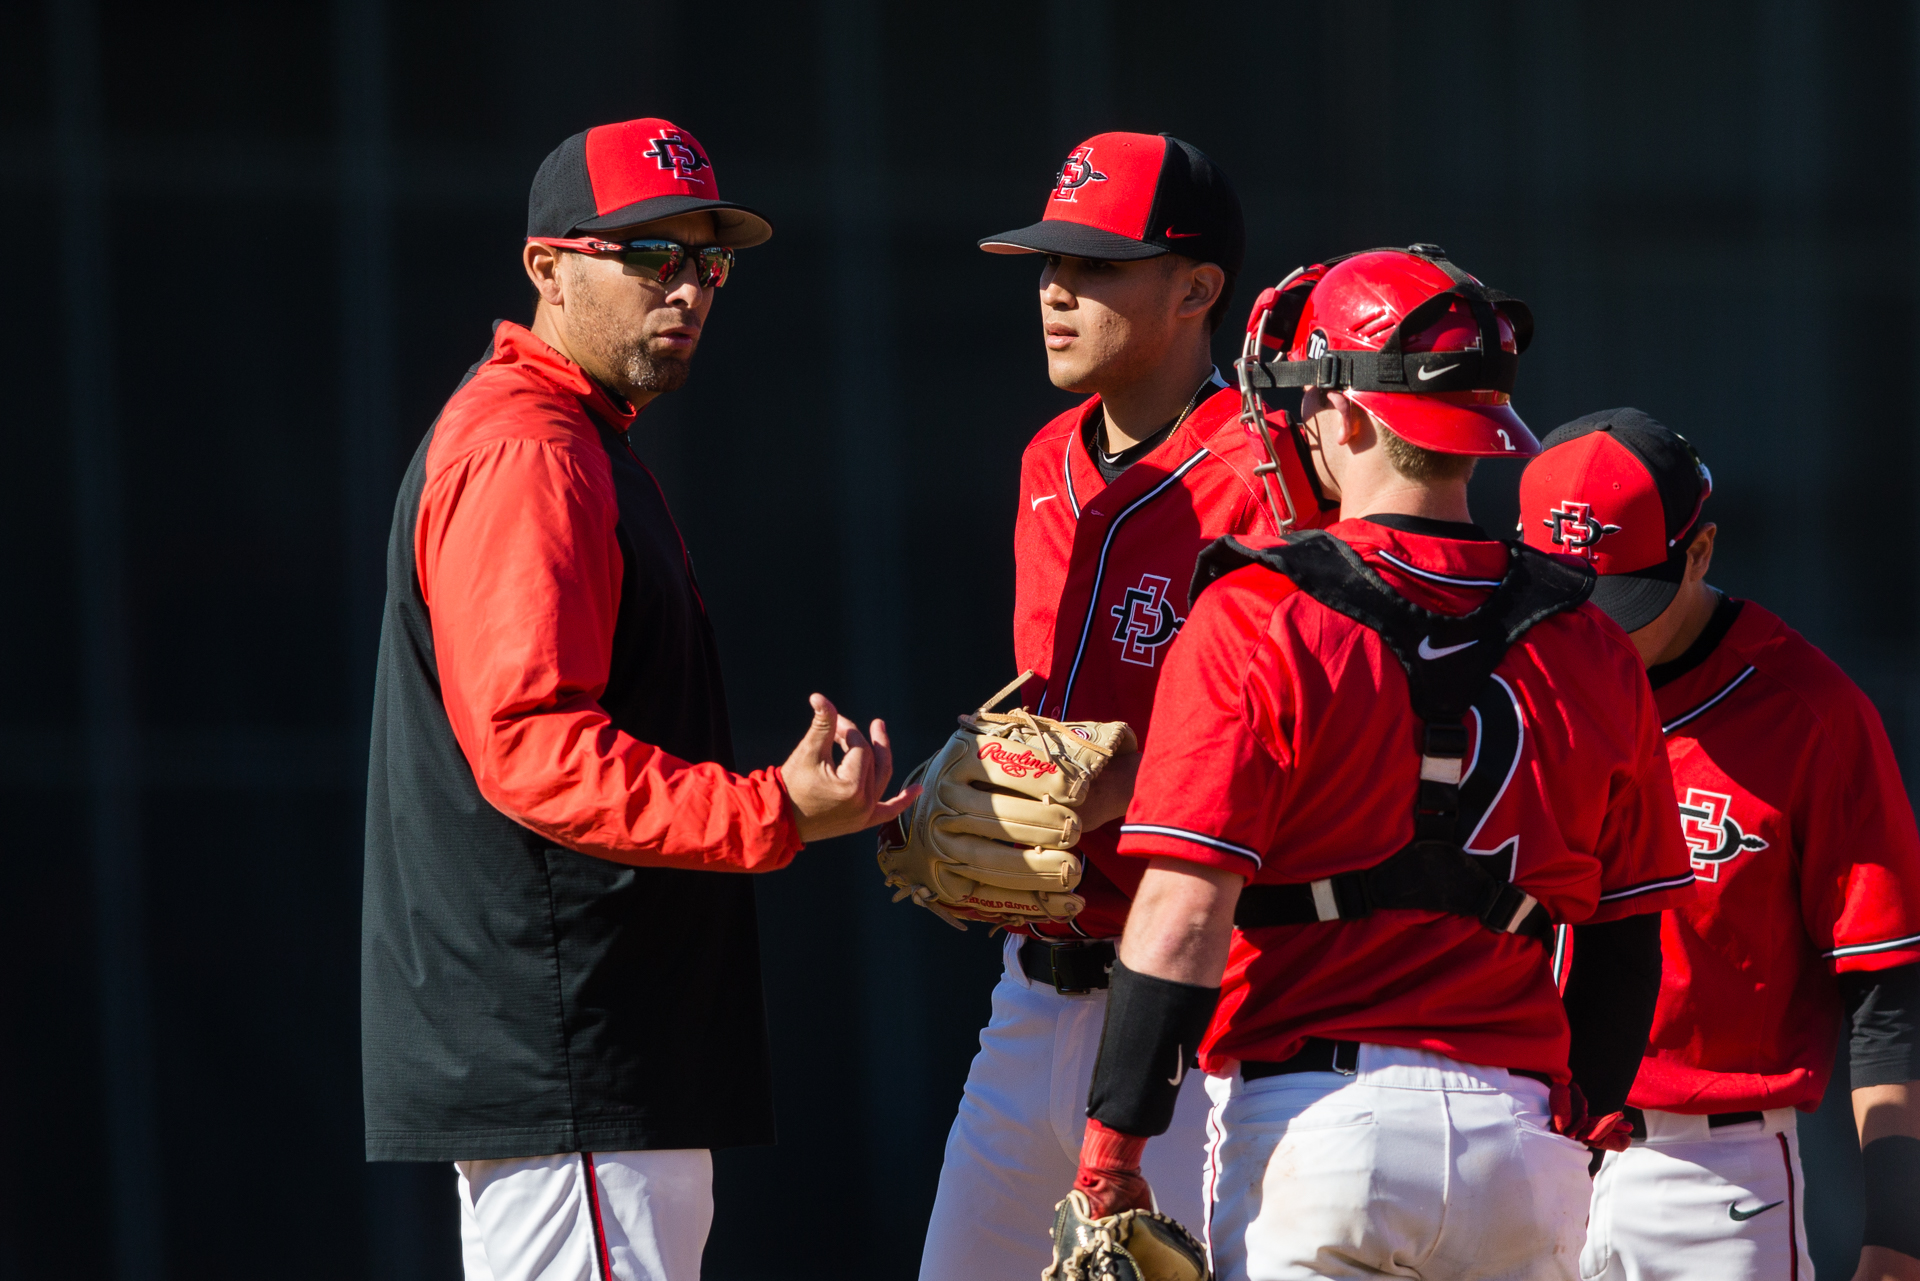 340be64e2b1 Baseball Travels to Cal State Fullerton This Weekend - SDSU Athletics